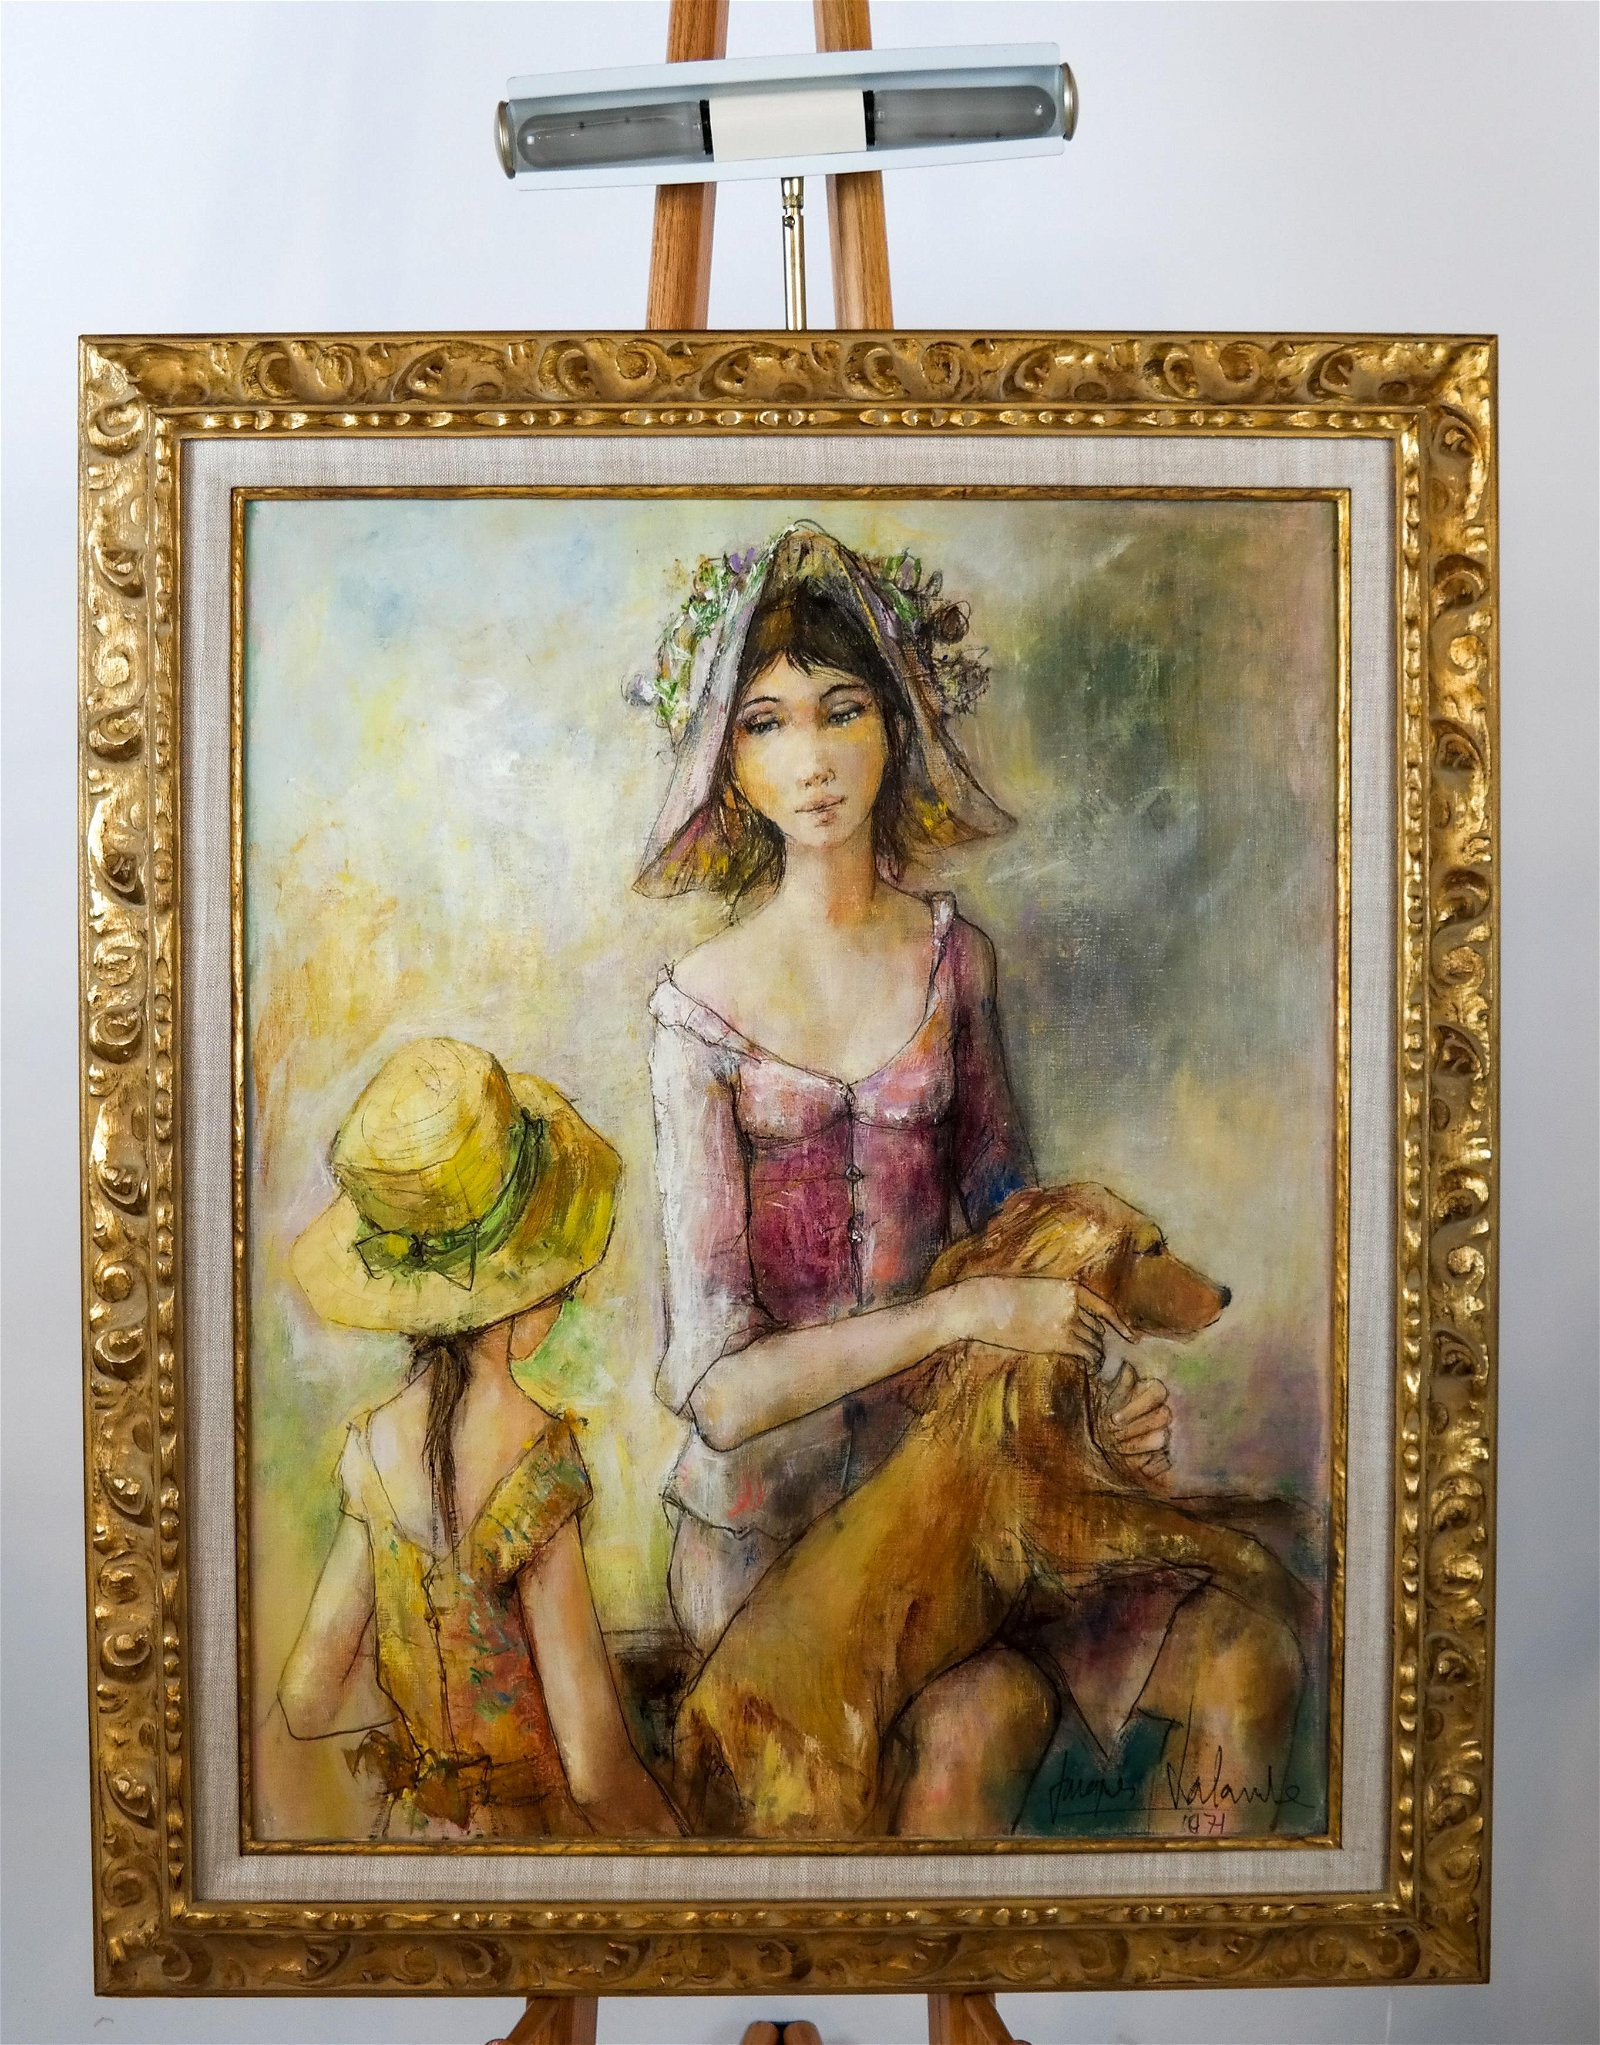 Jacque LALANDE: Girl with a Dog - Oil on Canvas